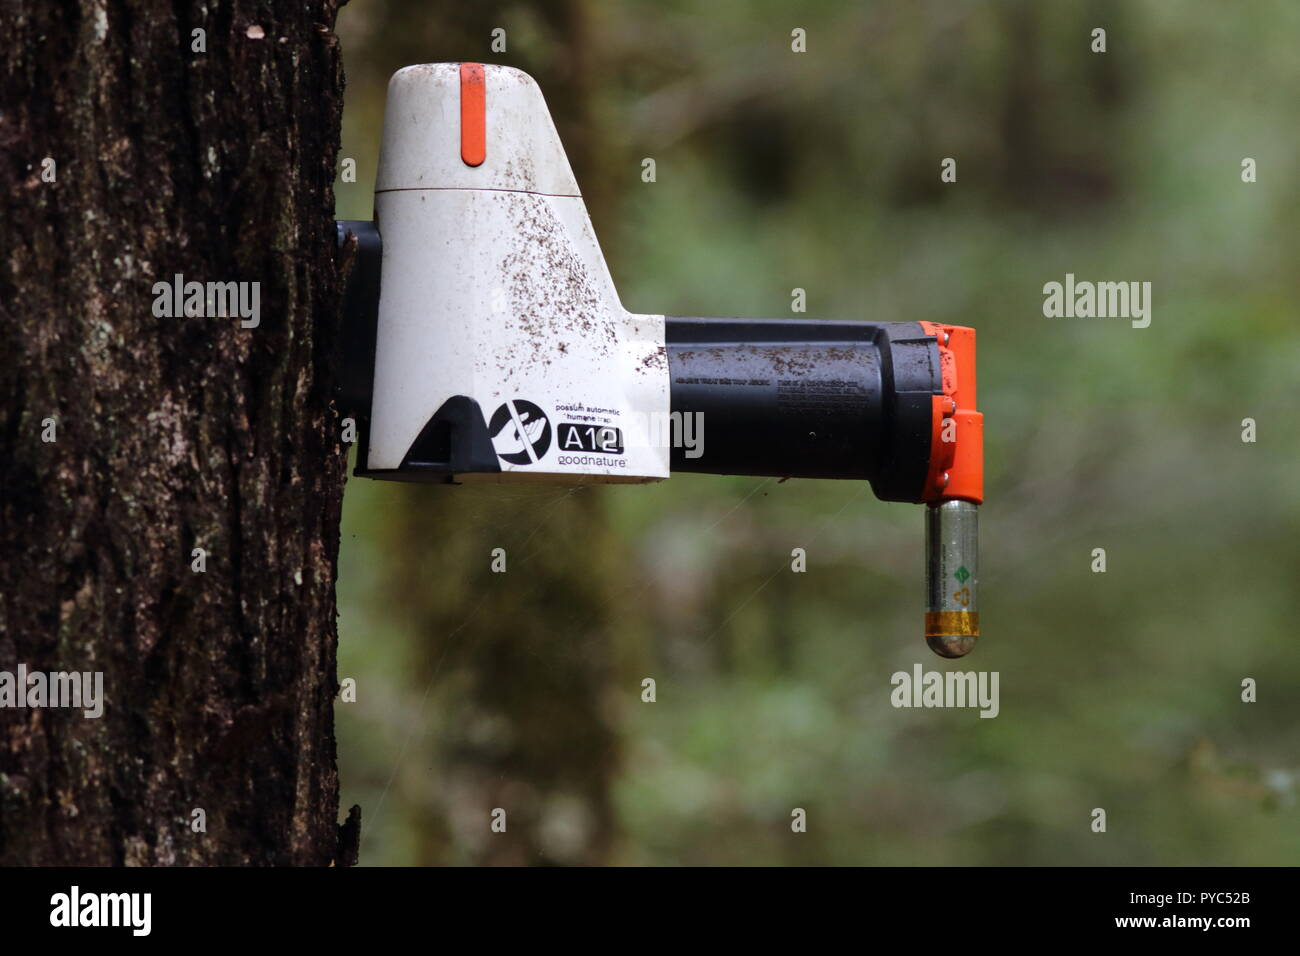 A 12 Possum humane killing trap, used in New Zealand to eradicate the Possum by 2050, for conservation of its wildlife use to destroy invasive species - Stock Image